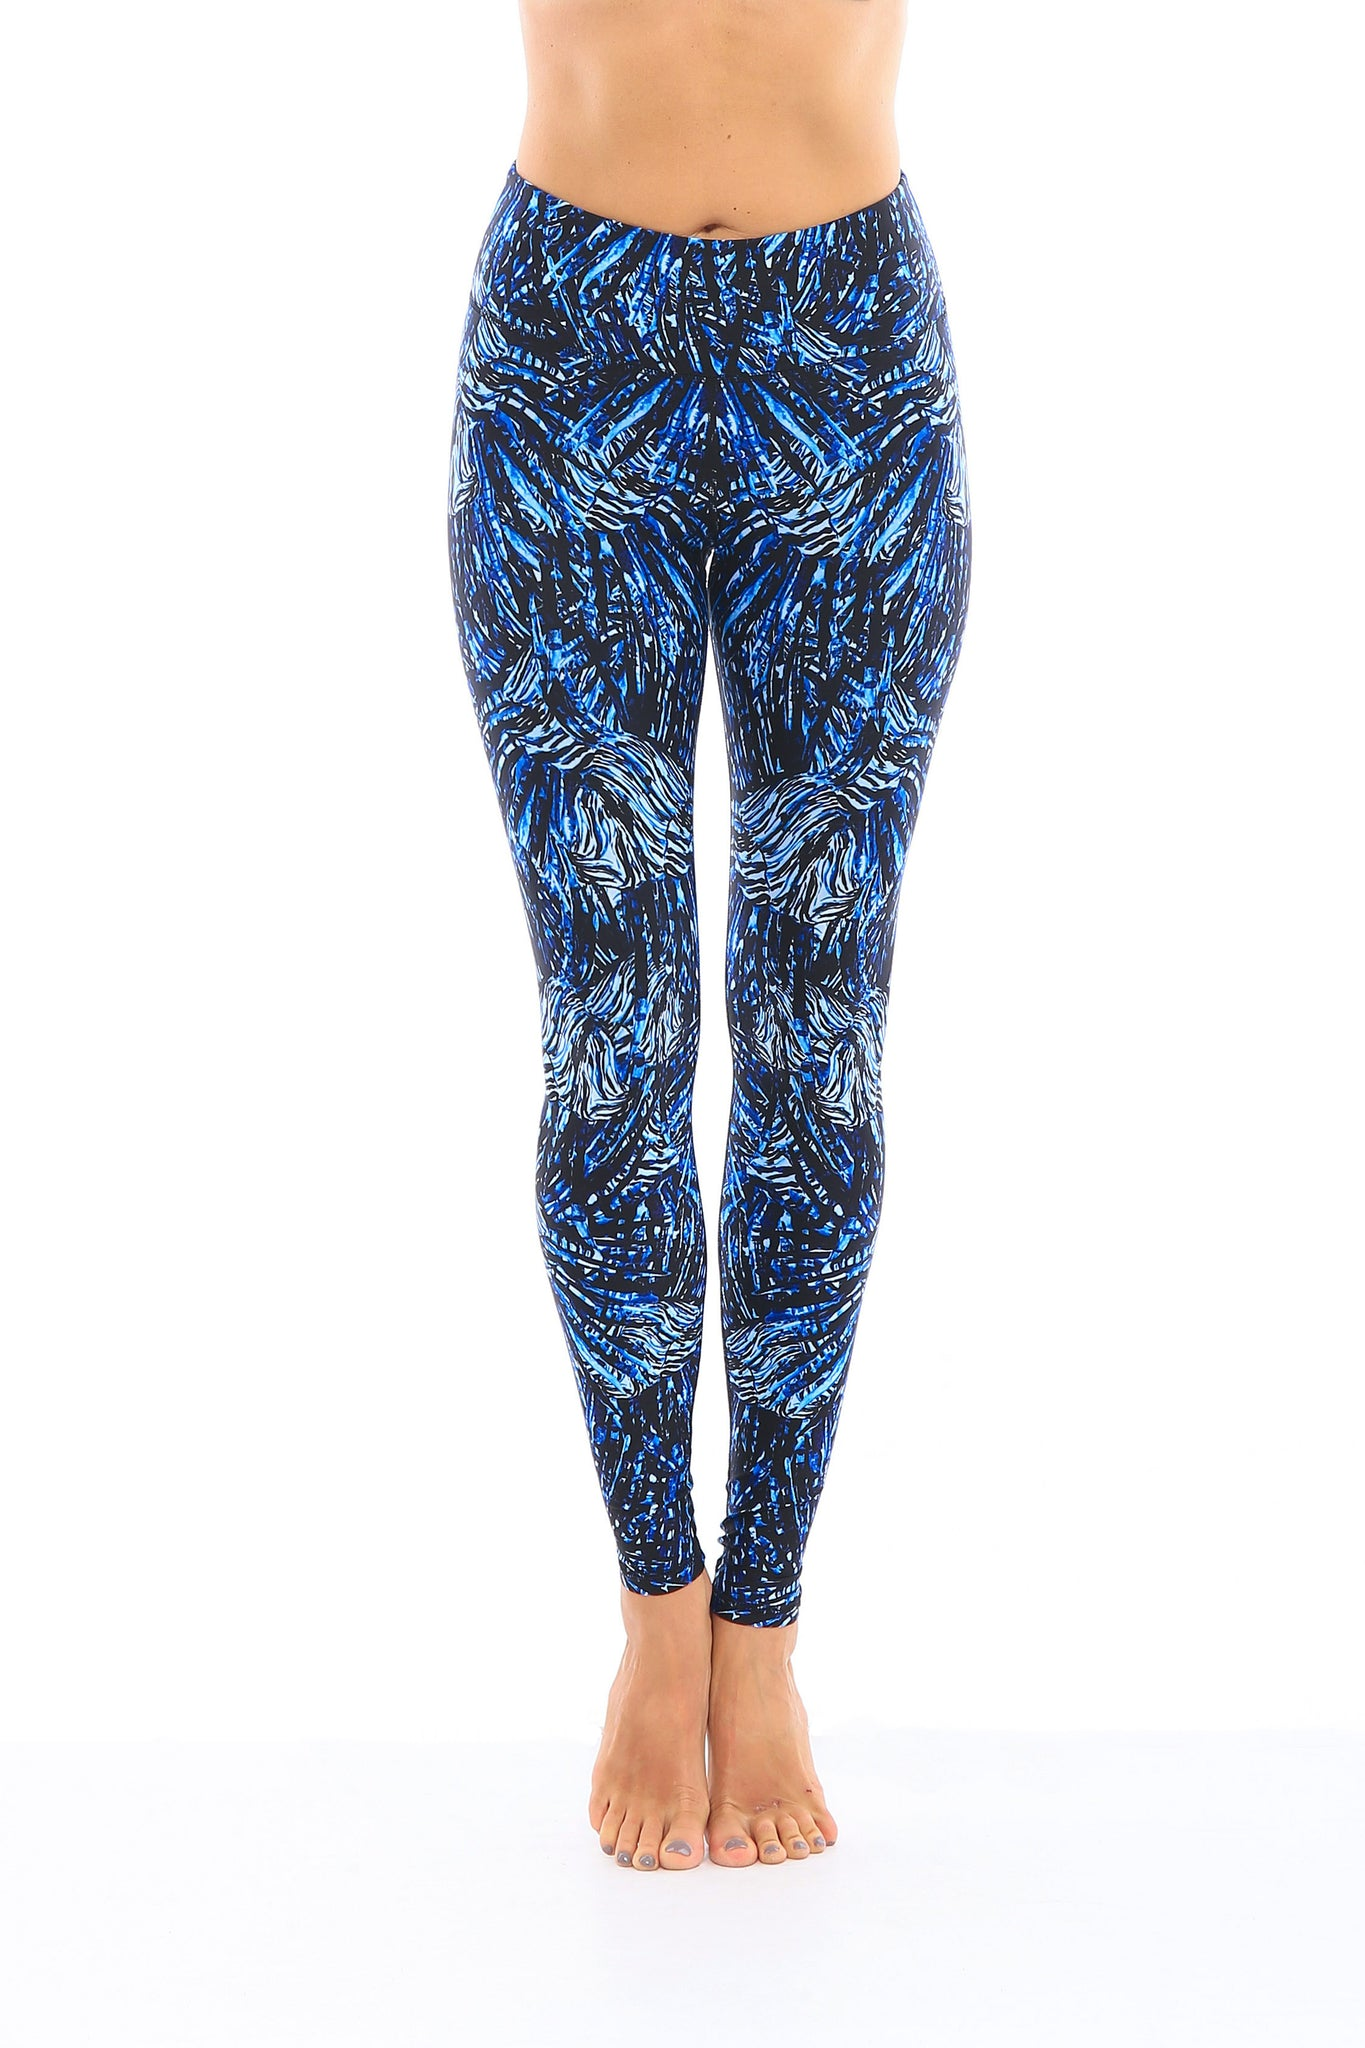 Indigo Lionfish Leggings (LIMITED EDITION)